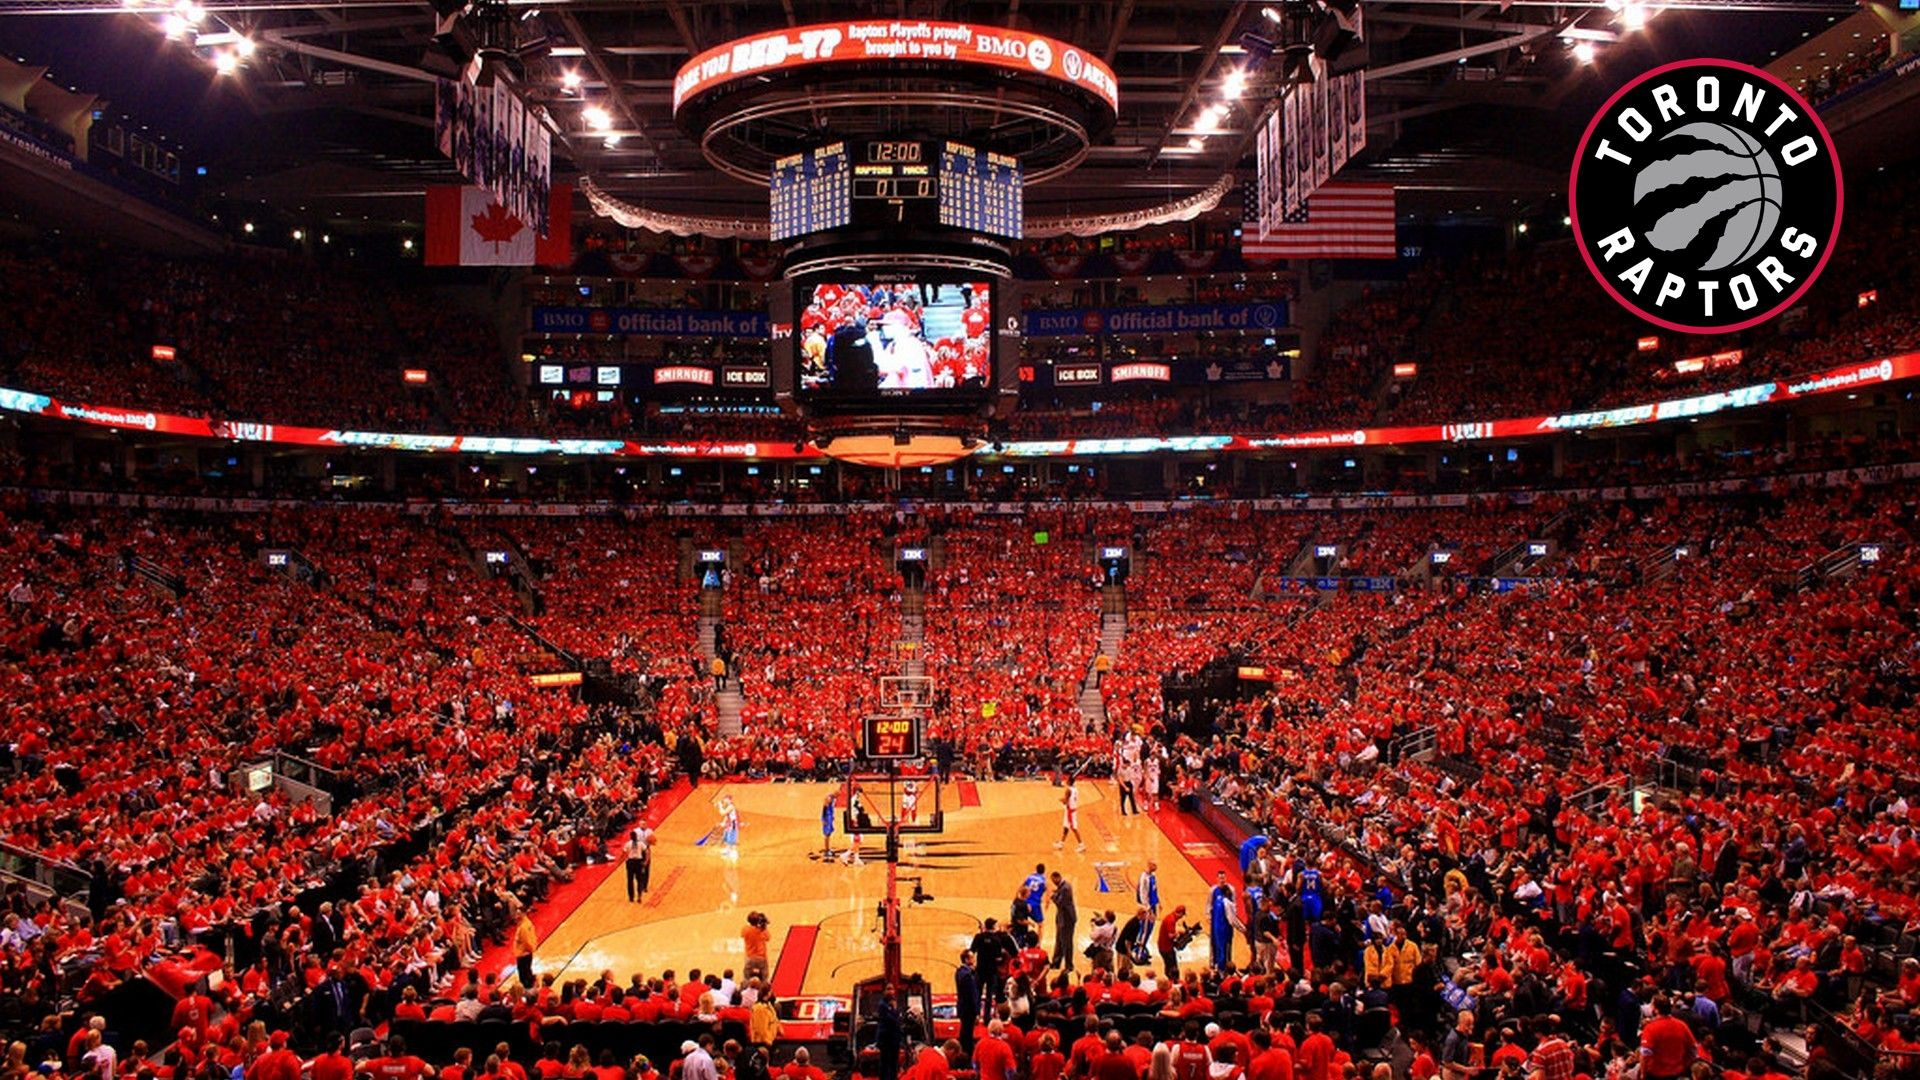 Toronto Raptors Stadium Desktop Wallpapers In 2020 Toronto Raptors Nba Pictures Basketball Background